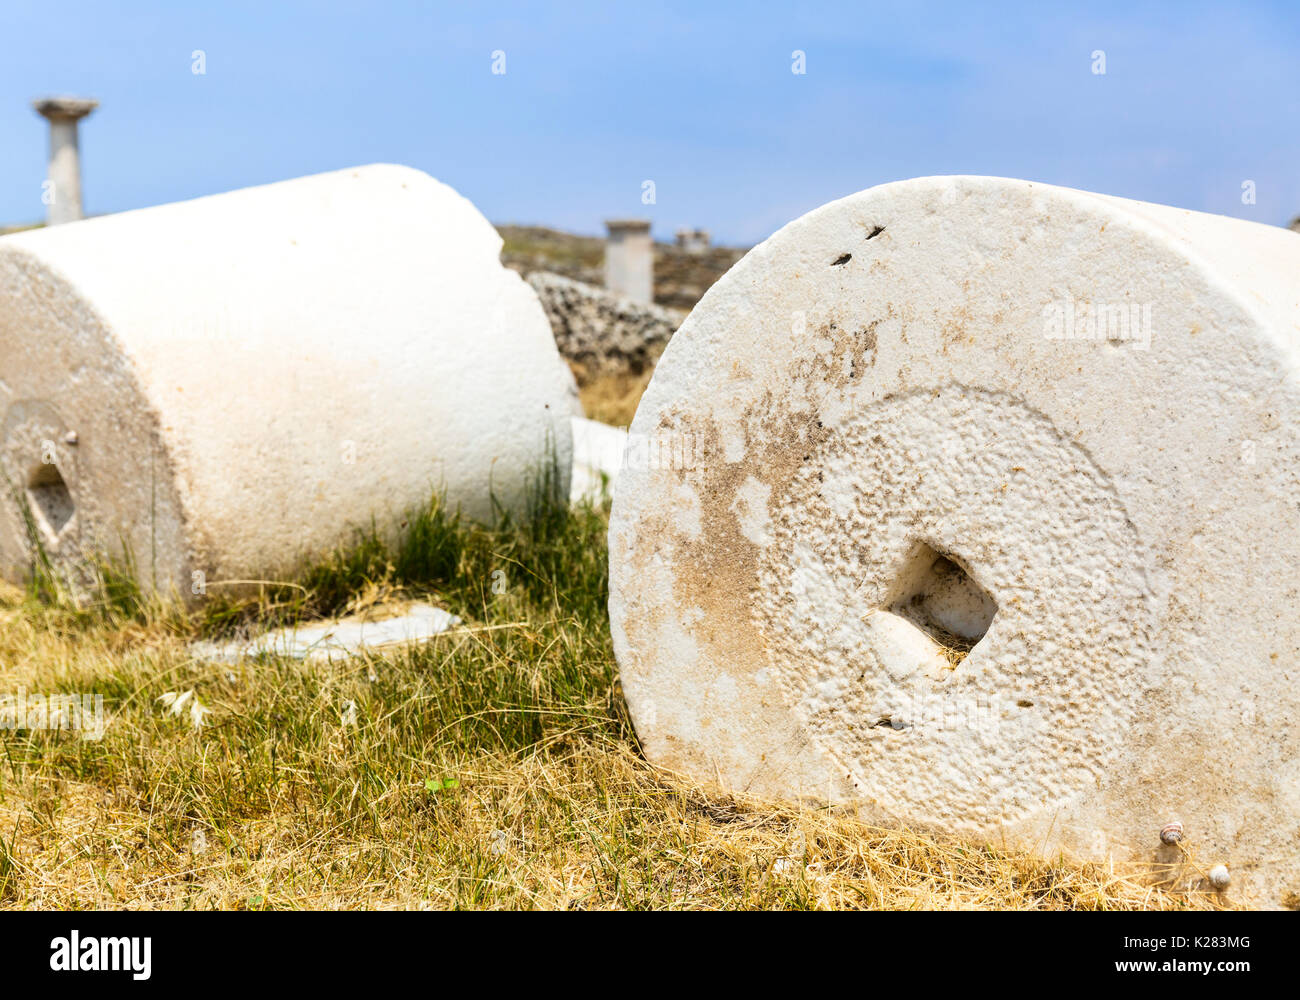 Cylindrical column blocks lying amidst the ancient ruins of Delos, Greece. - Stock Image